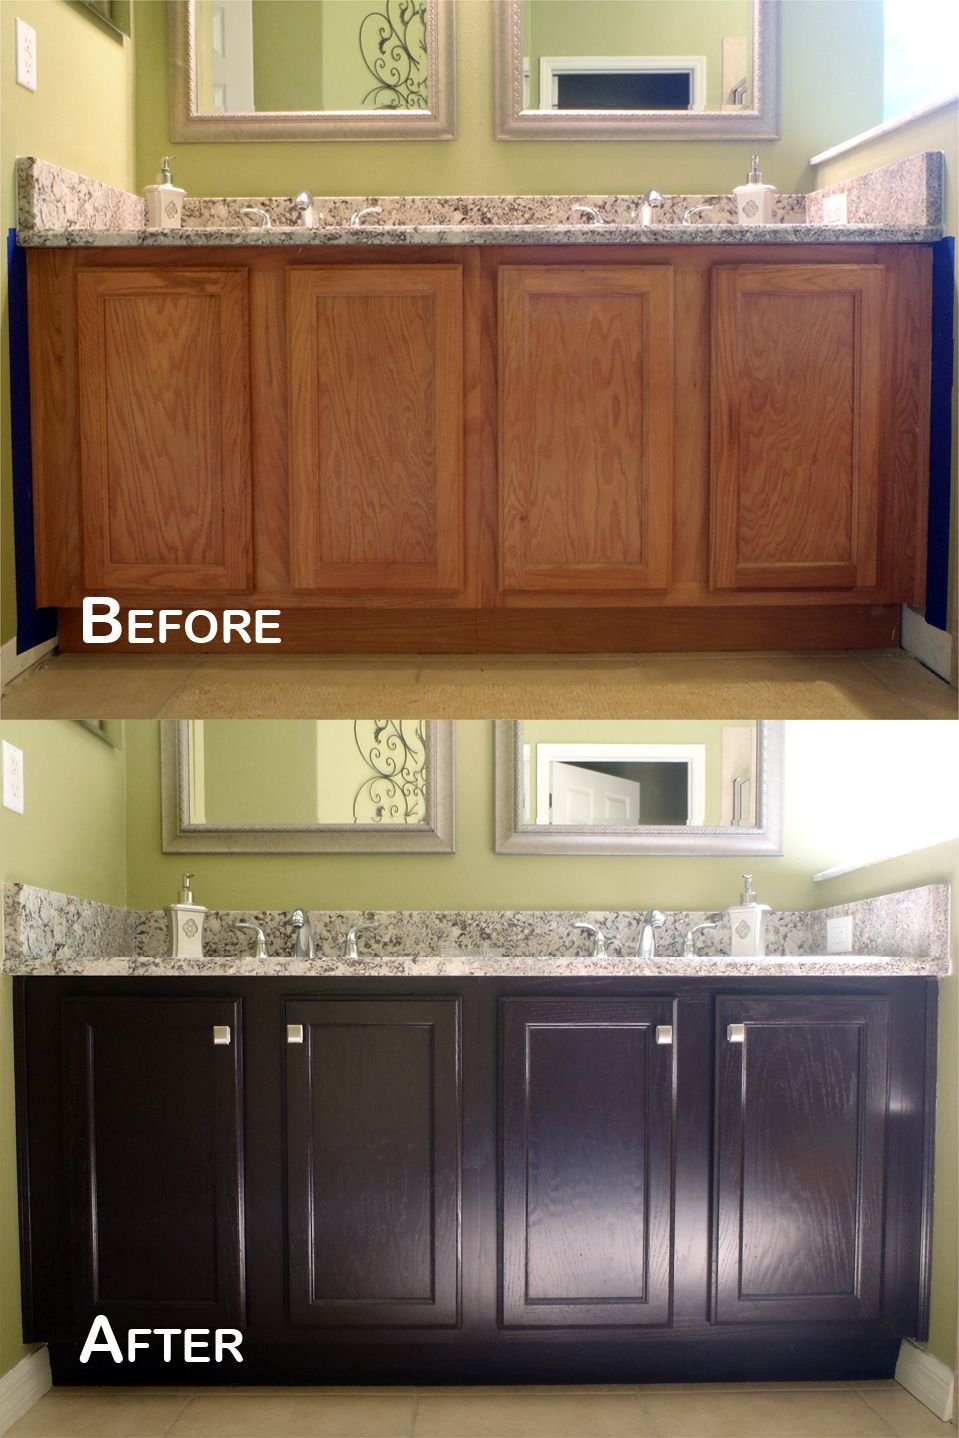 Amazing Transformation General Finishes Java Gel Stain Clear Satin Topcoat With Purd Stained Kitchen Cabinets Staining Cabinets Kitchen Cabinets Makeover